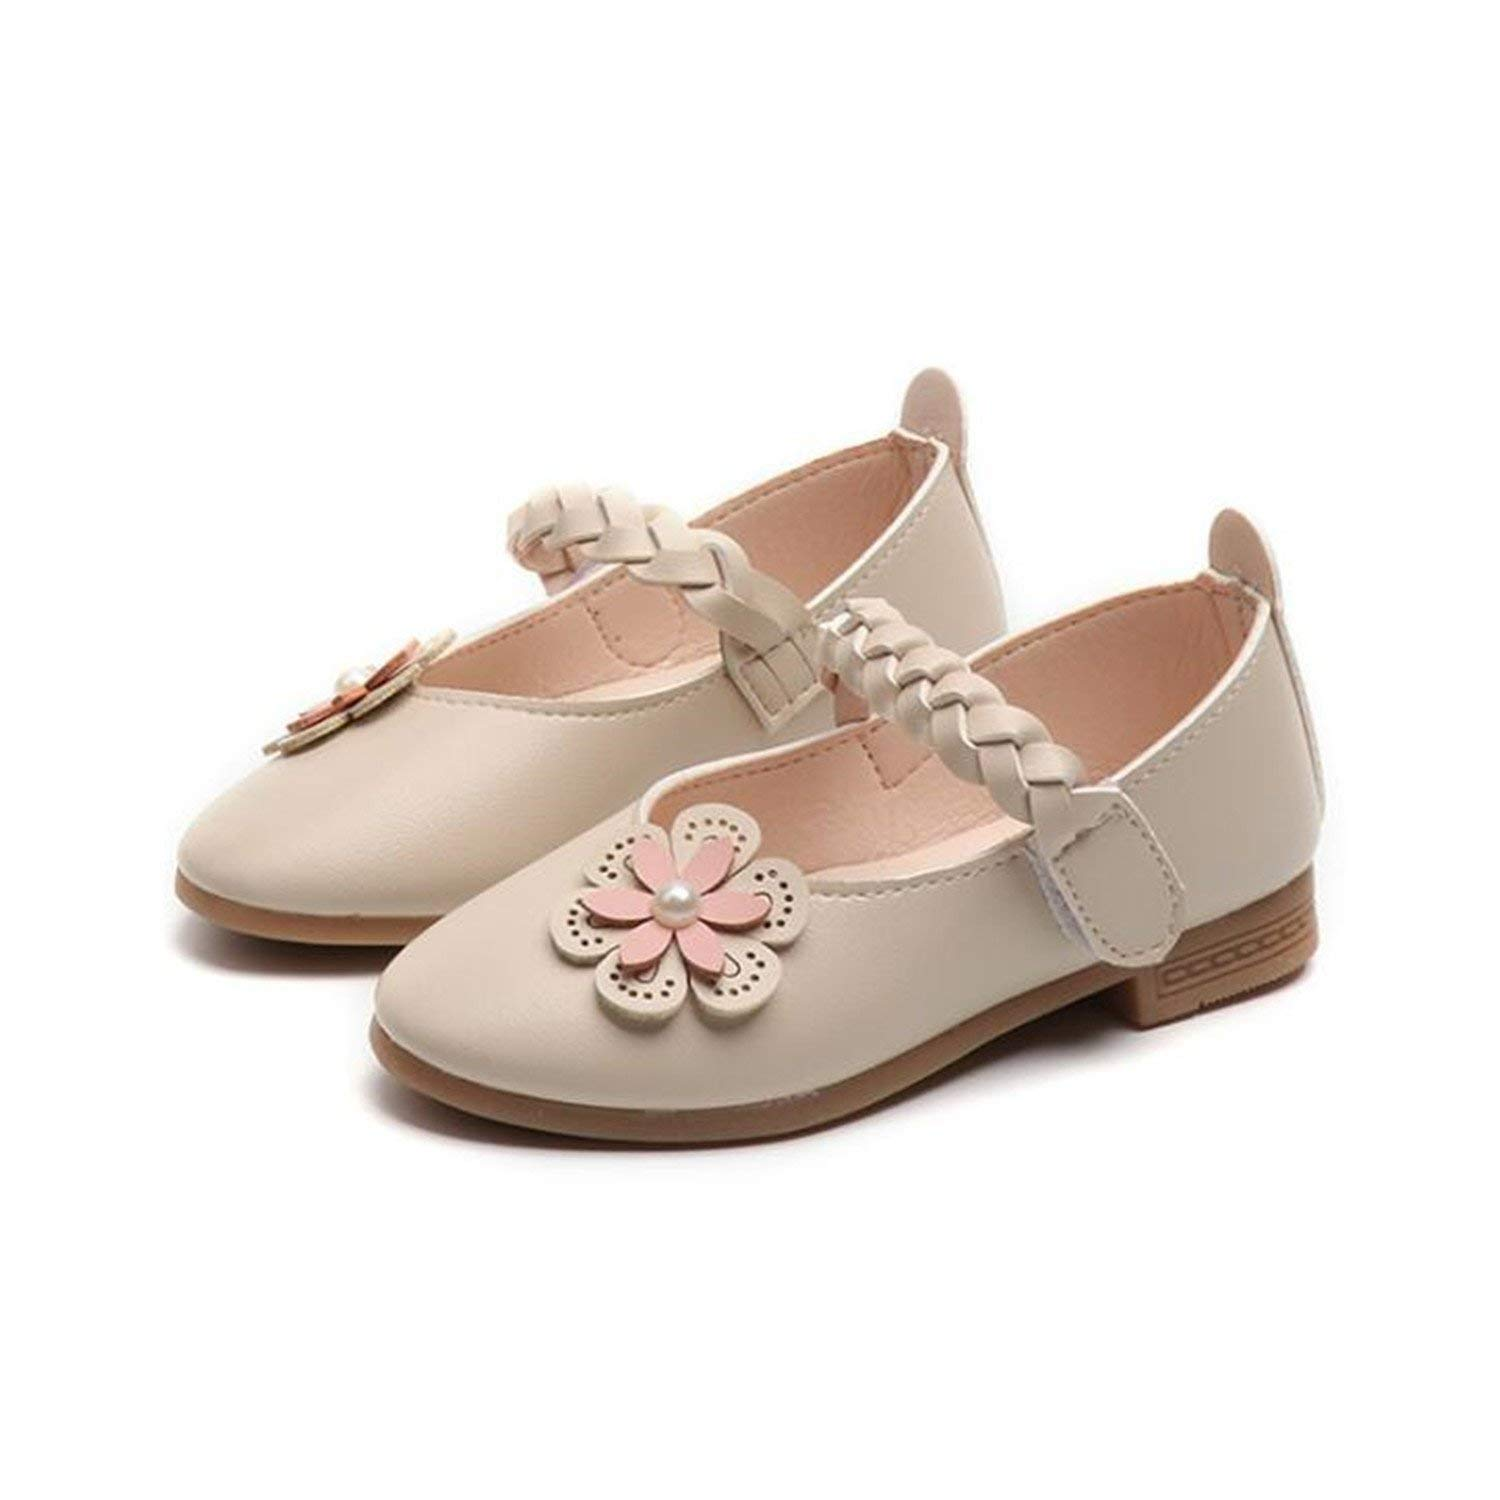 afe7c74a08715 Get Quotations · Perfues Children Soft Leather Shoes Kids Flats for Girls Shoes  2018 New Cute Girl Fashion Shoes